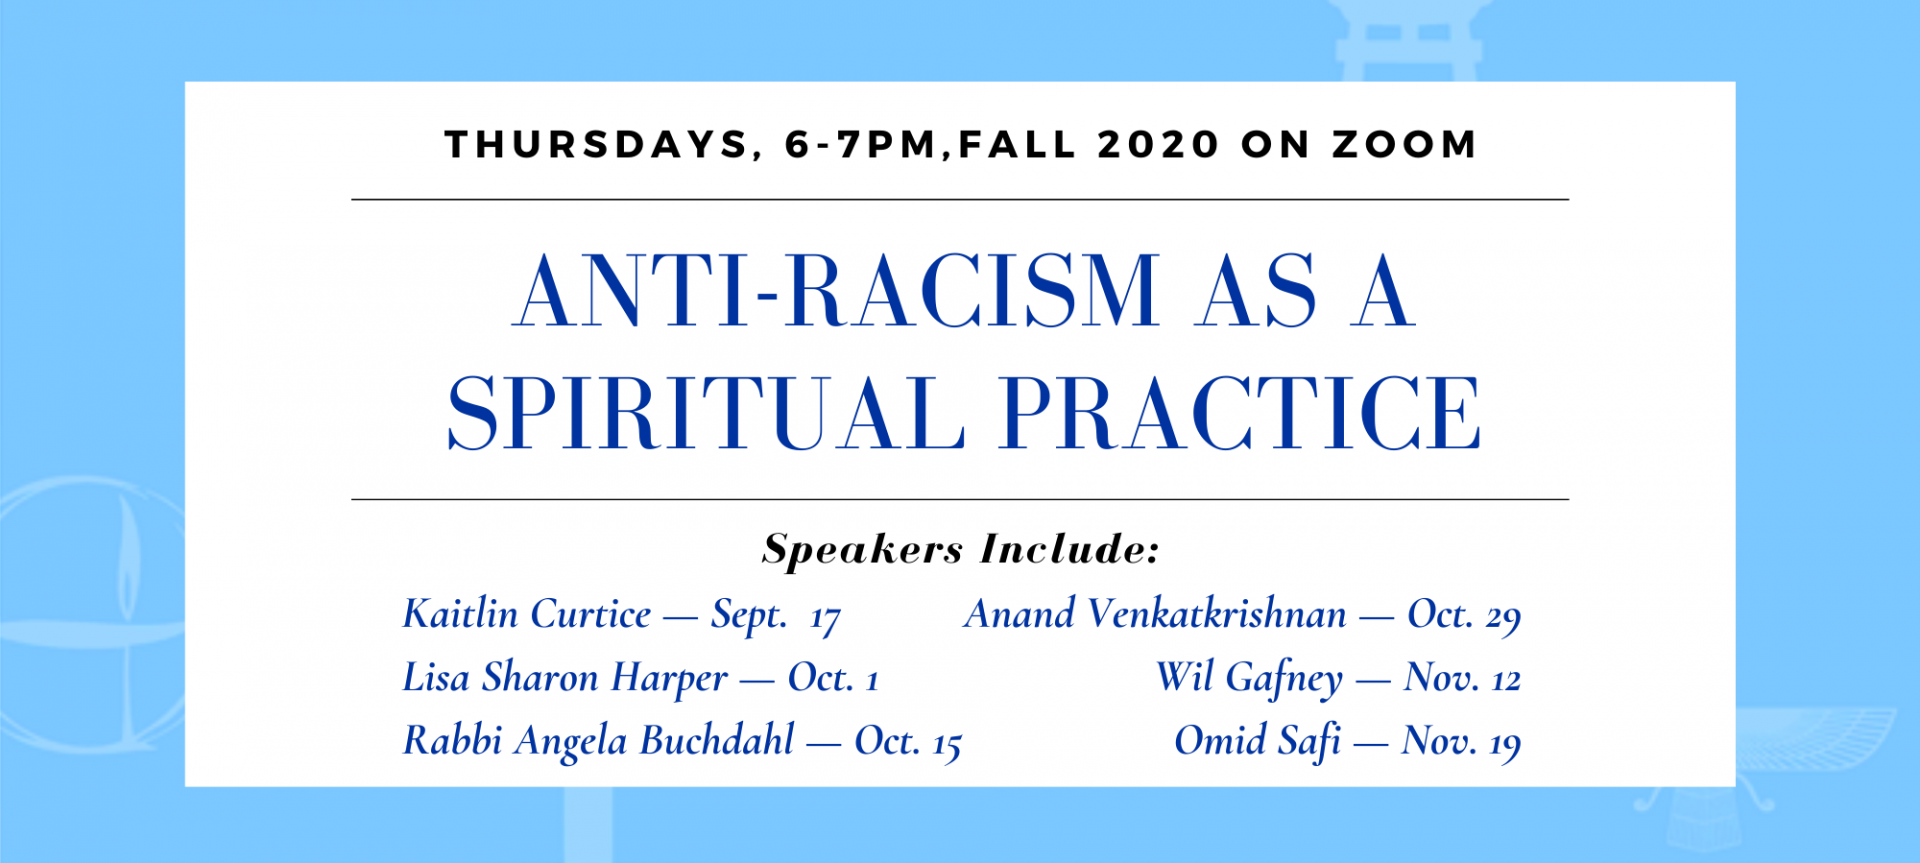 Anti-racism as a spiritual practice. Thursdays, 6-7pm, fall 2020 on zoom.  Speakers include Kaitlin Curtice — Sept.  17, Lisa Sharon Harper — Oct. 1, Rabbi Angela Buchdahl — Oct. 15, Anand Venkatkrishnan — Oct. 29, Wil Gafney — Nov. 12, Omid Safi — Nov. 19.